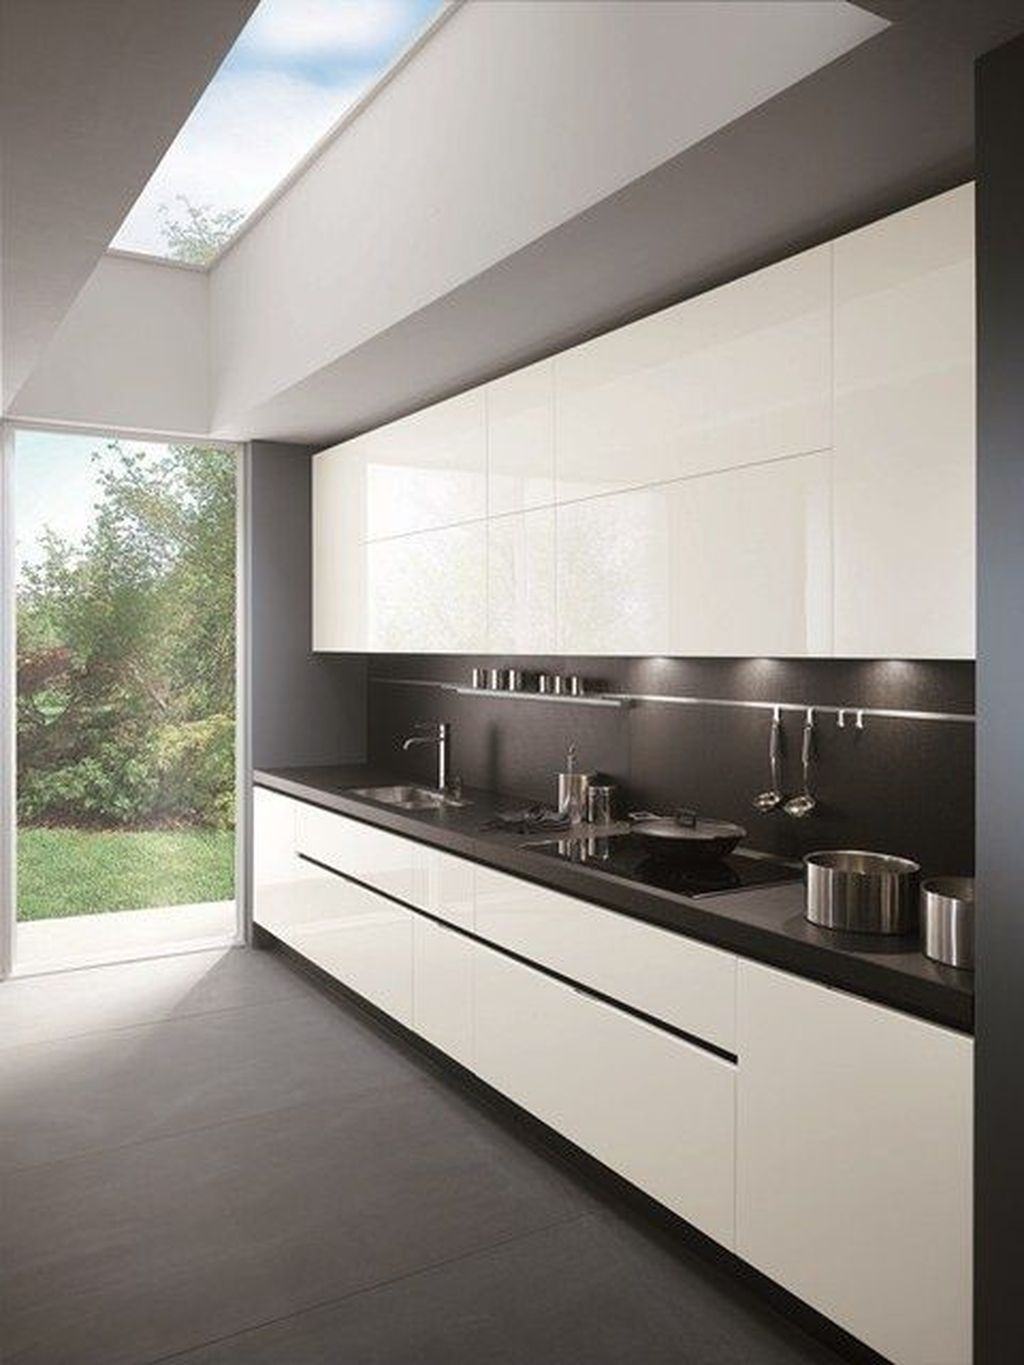 Simple Minimalist Small White Kitchen Design Ideas 04